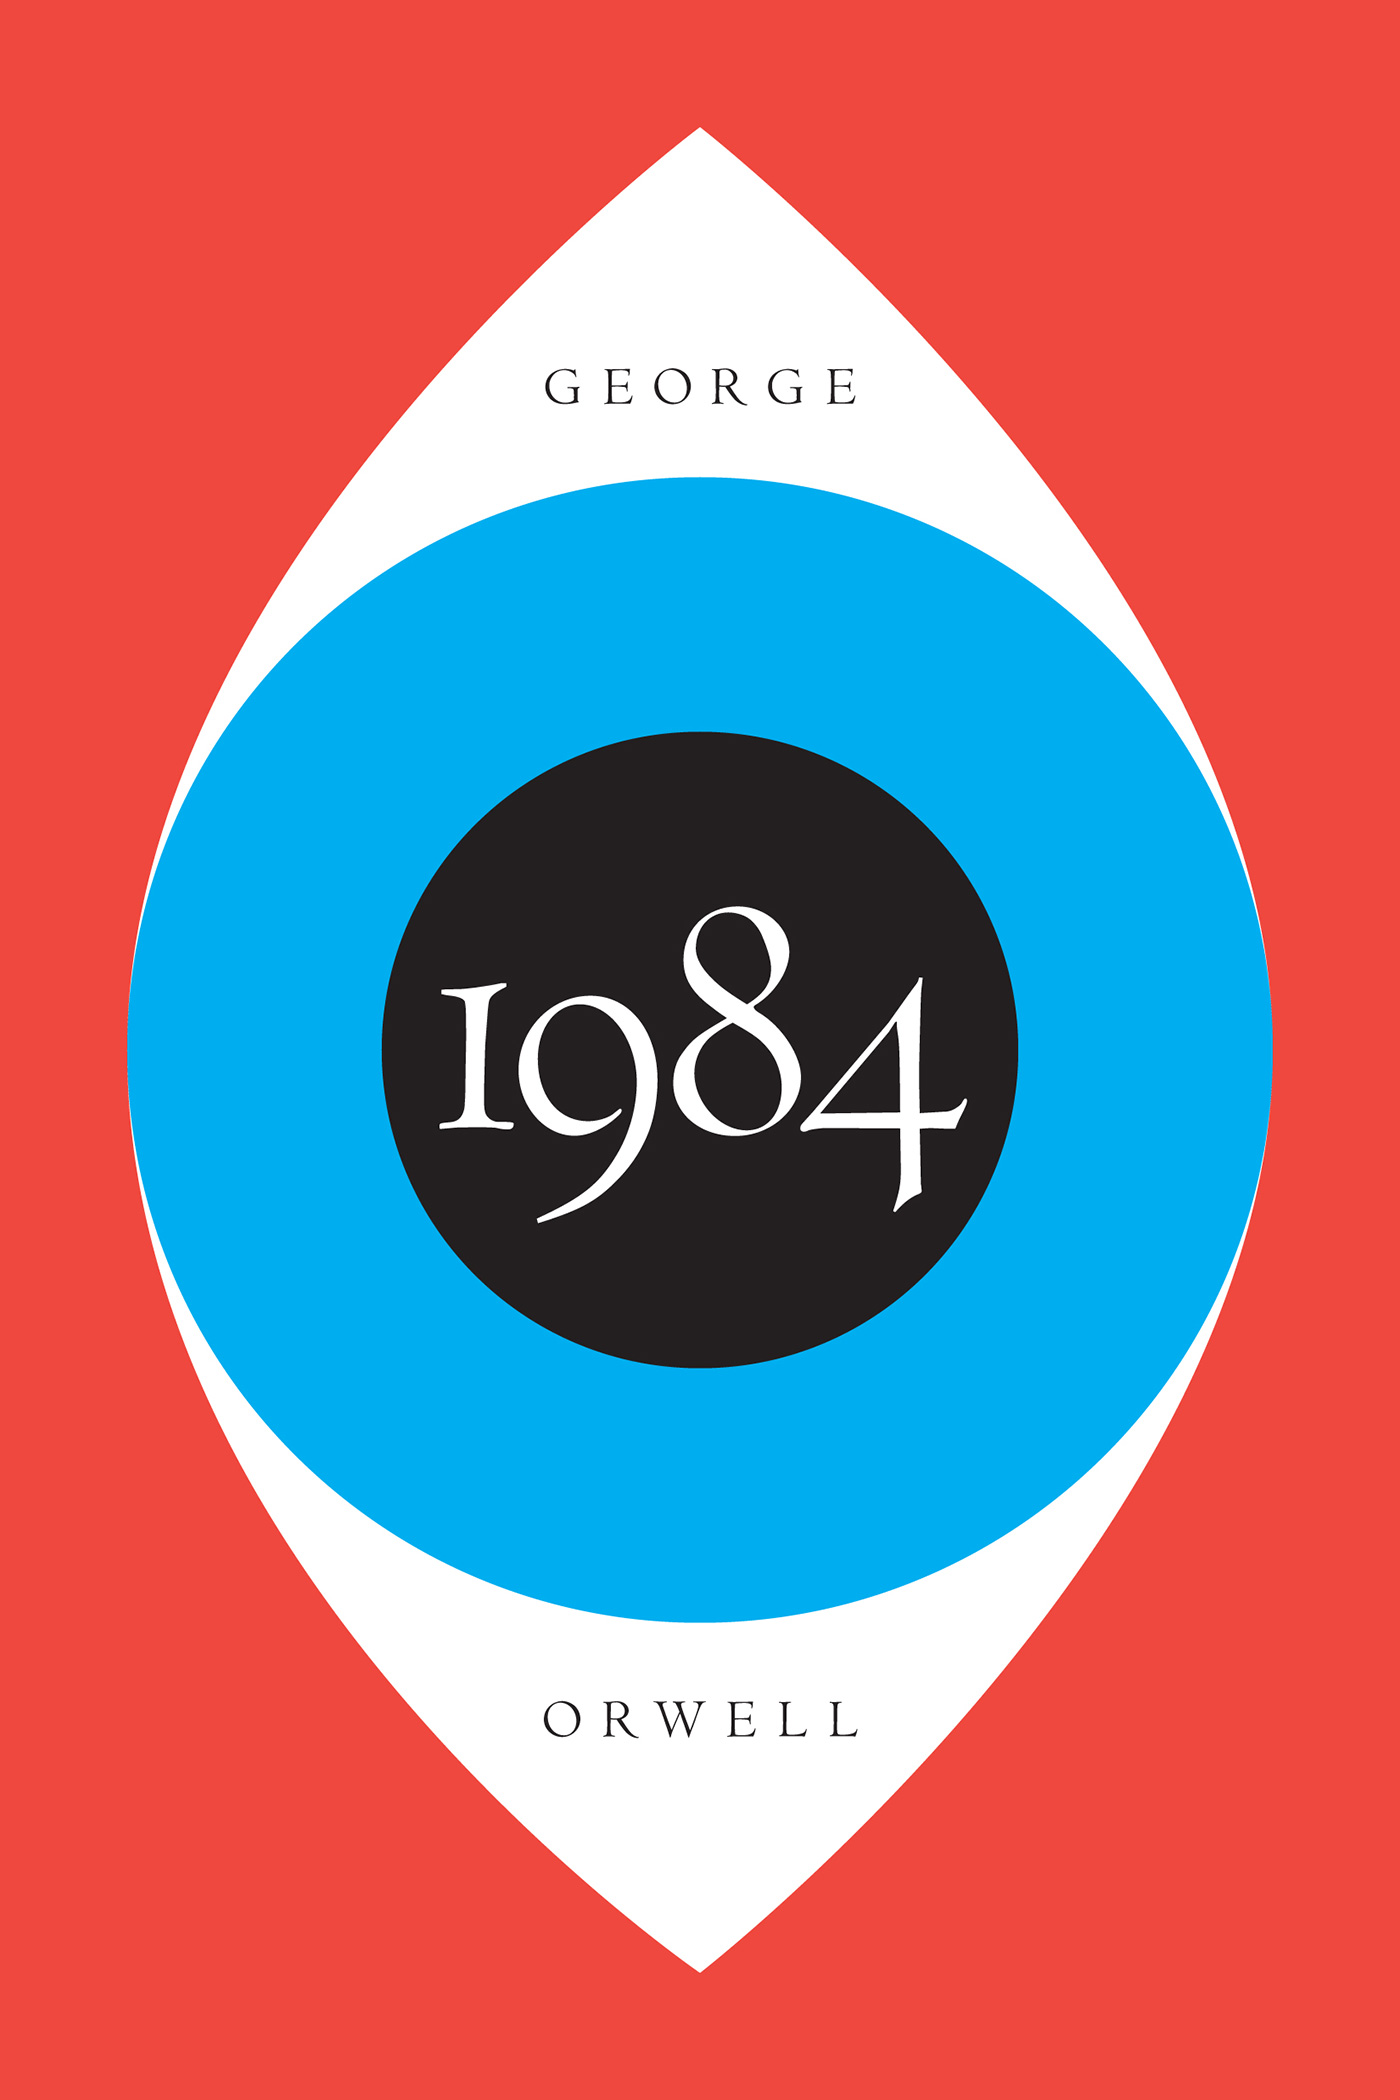 Orwell's 1984 was published on June 8, 1949.